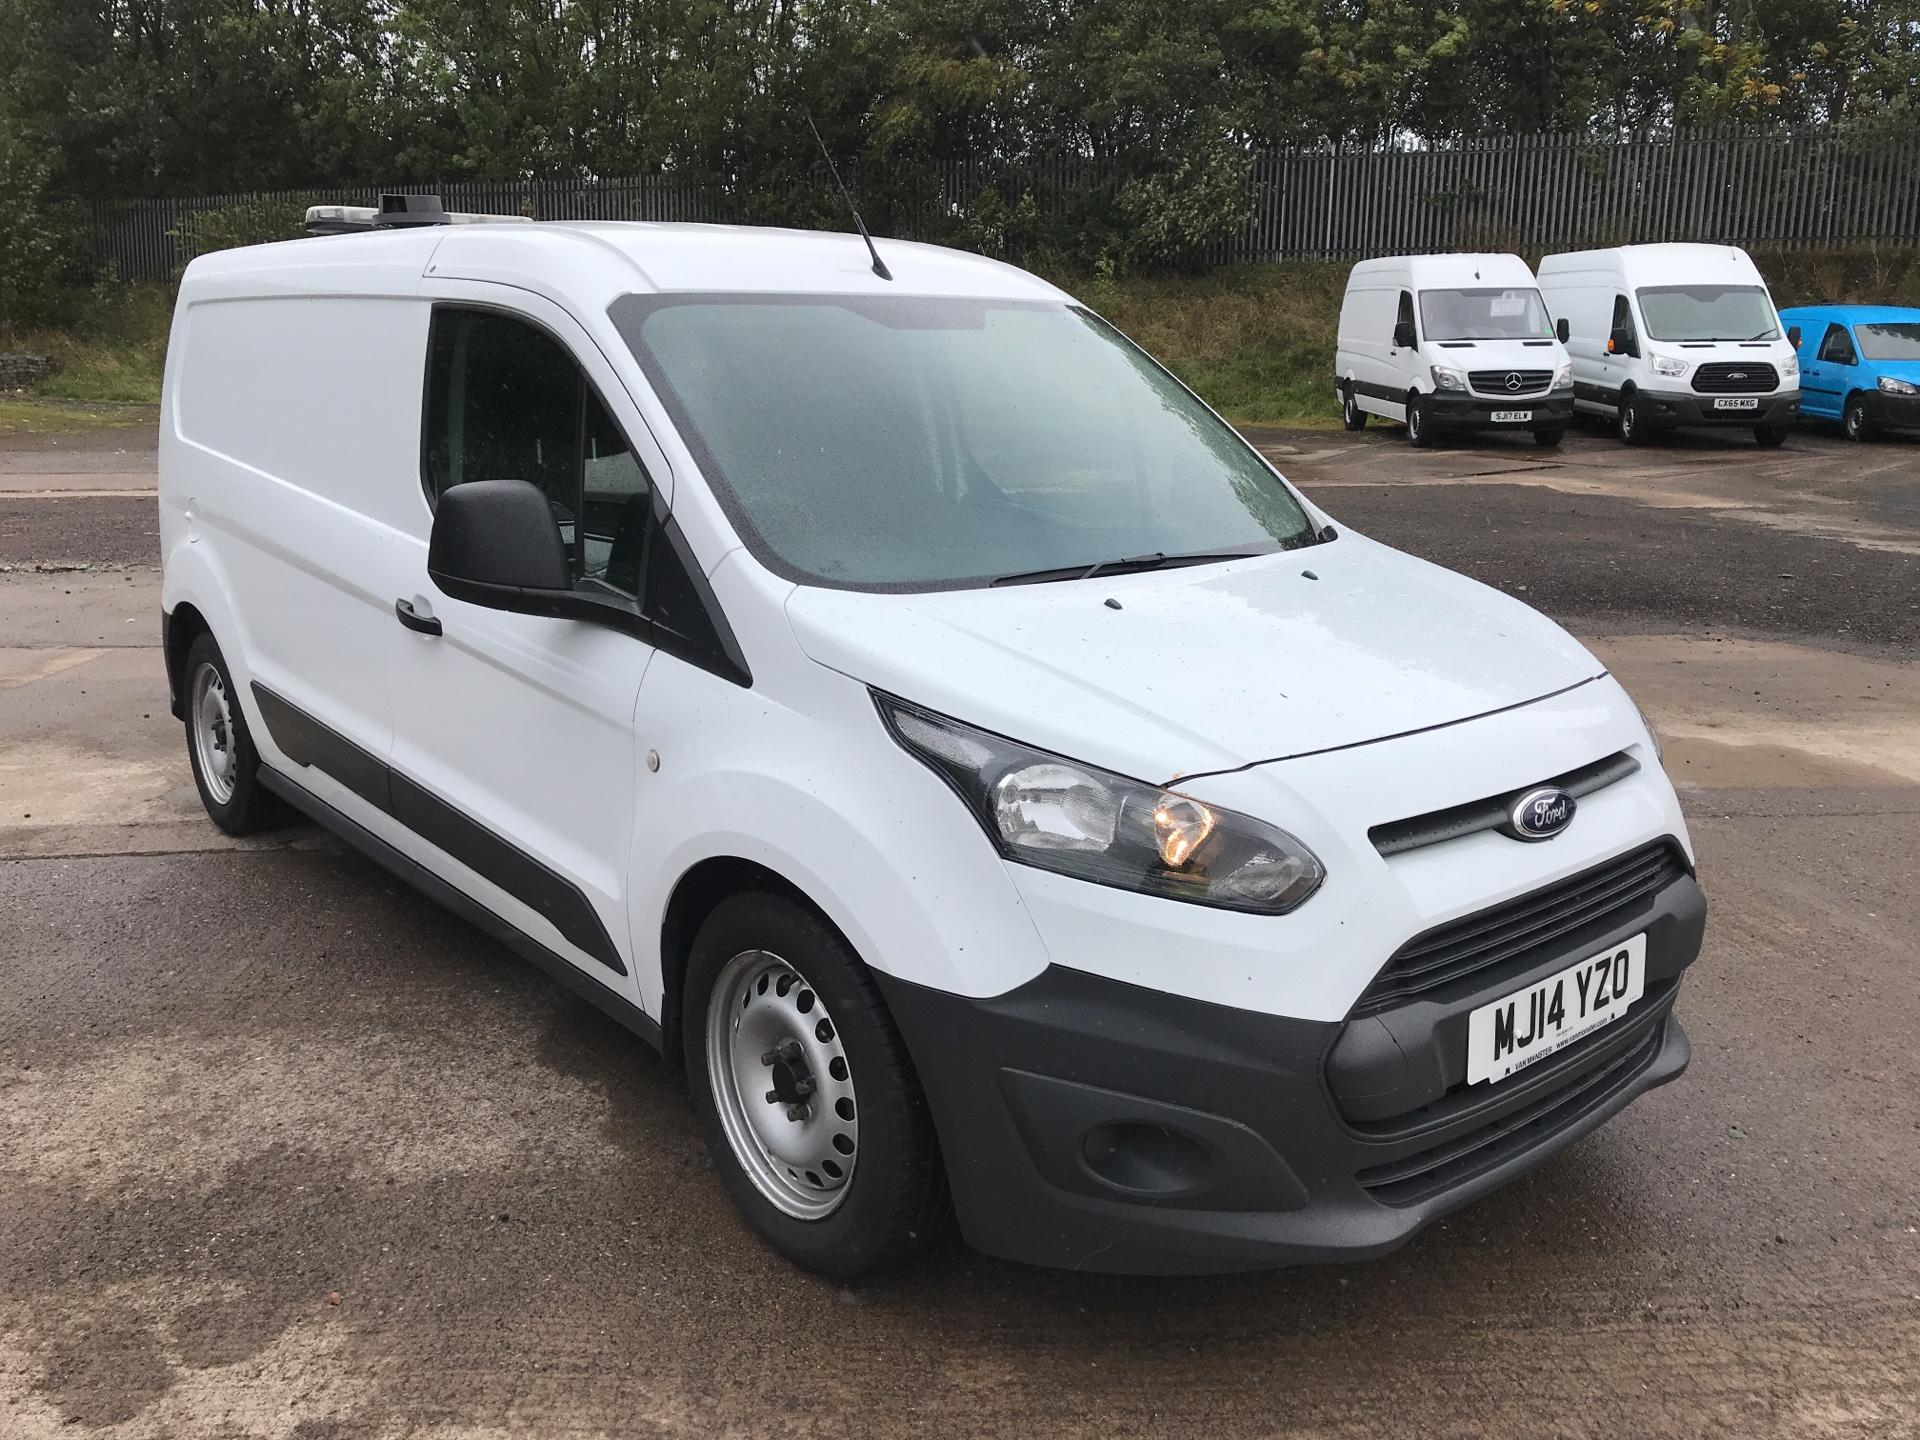 2014 Ford Transit Connect 240 L2 DIESEL 1.6 TDCI 115PS VAN EURO 5 (MJ14YZO)